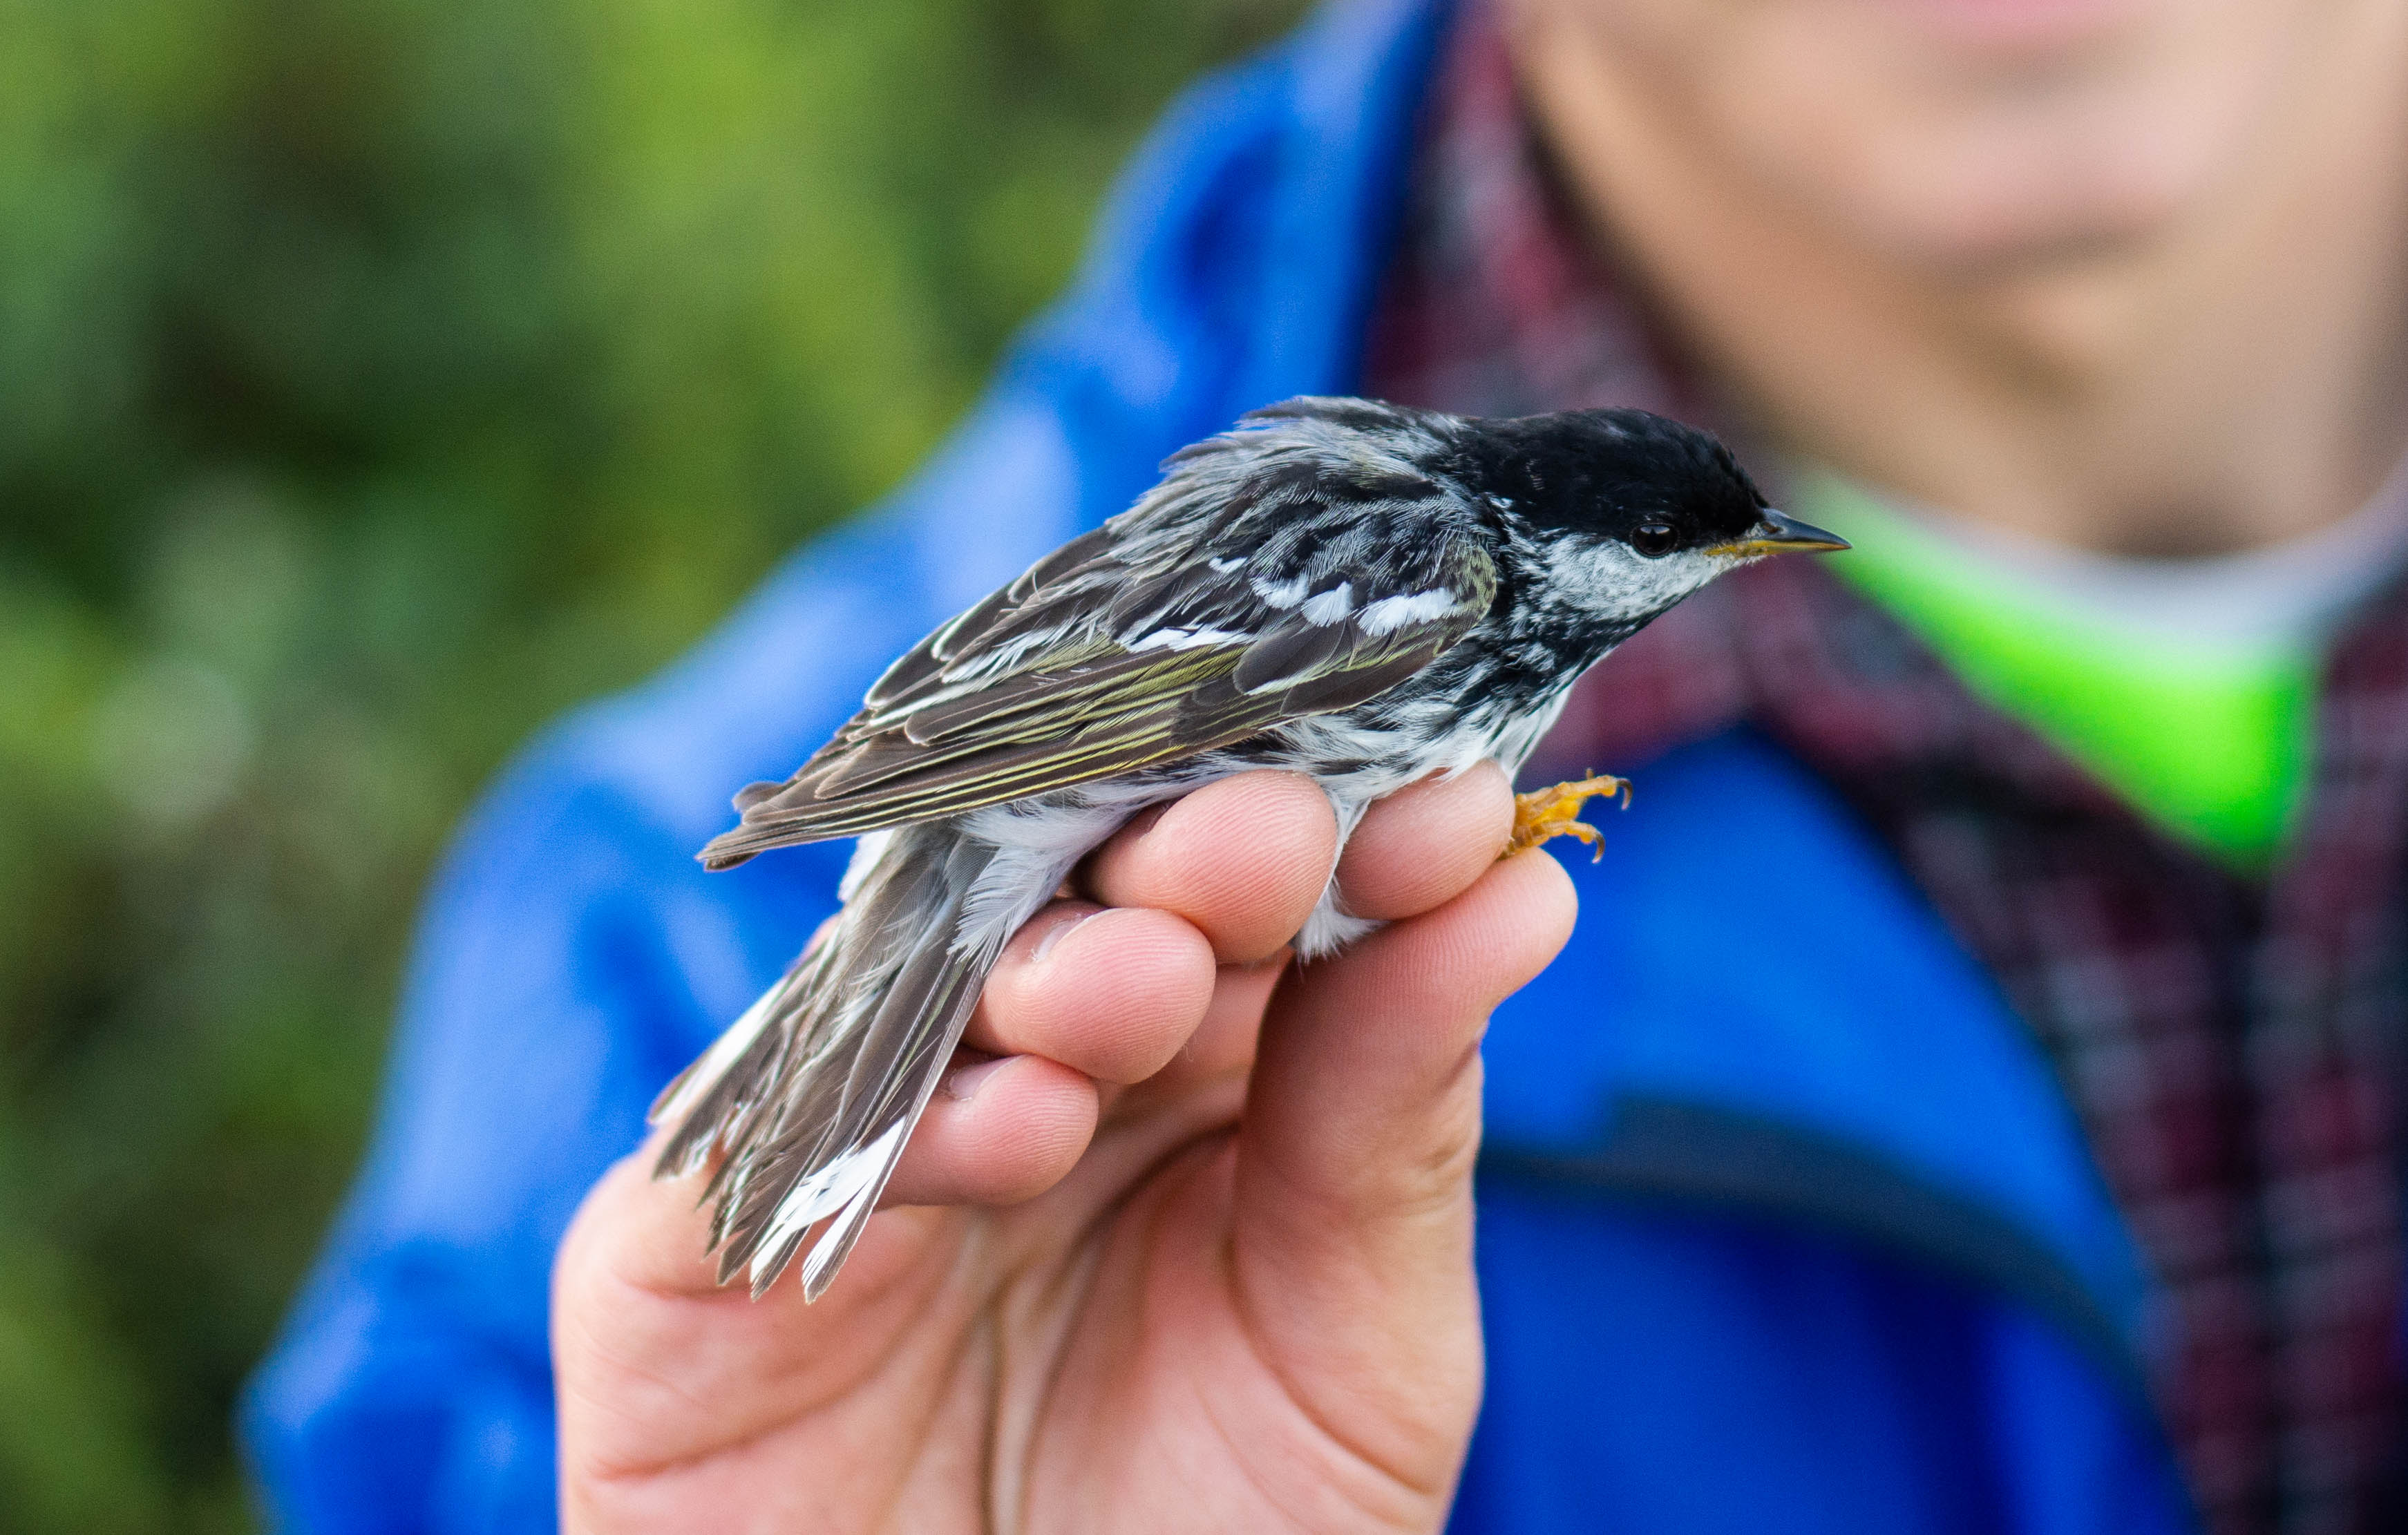 Researcher holds small song bird